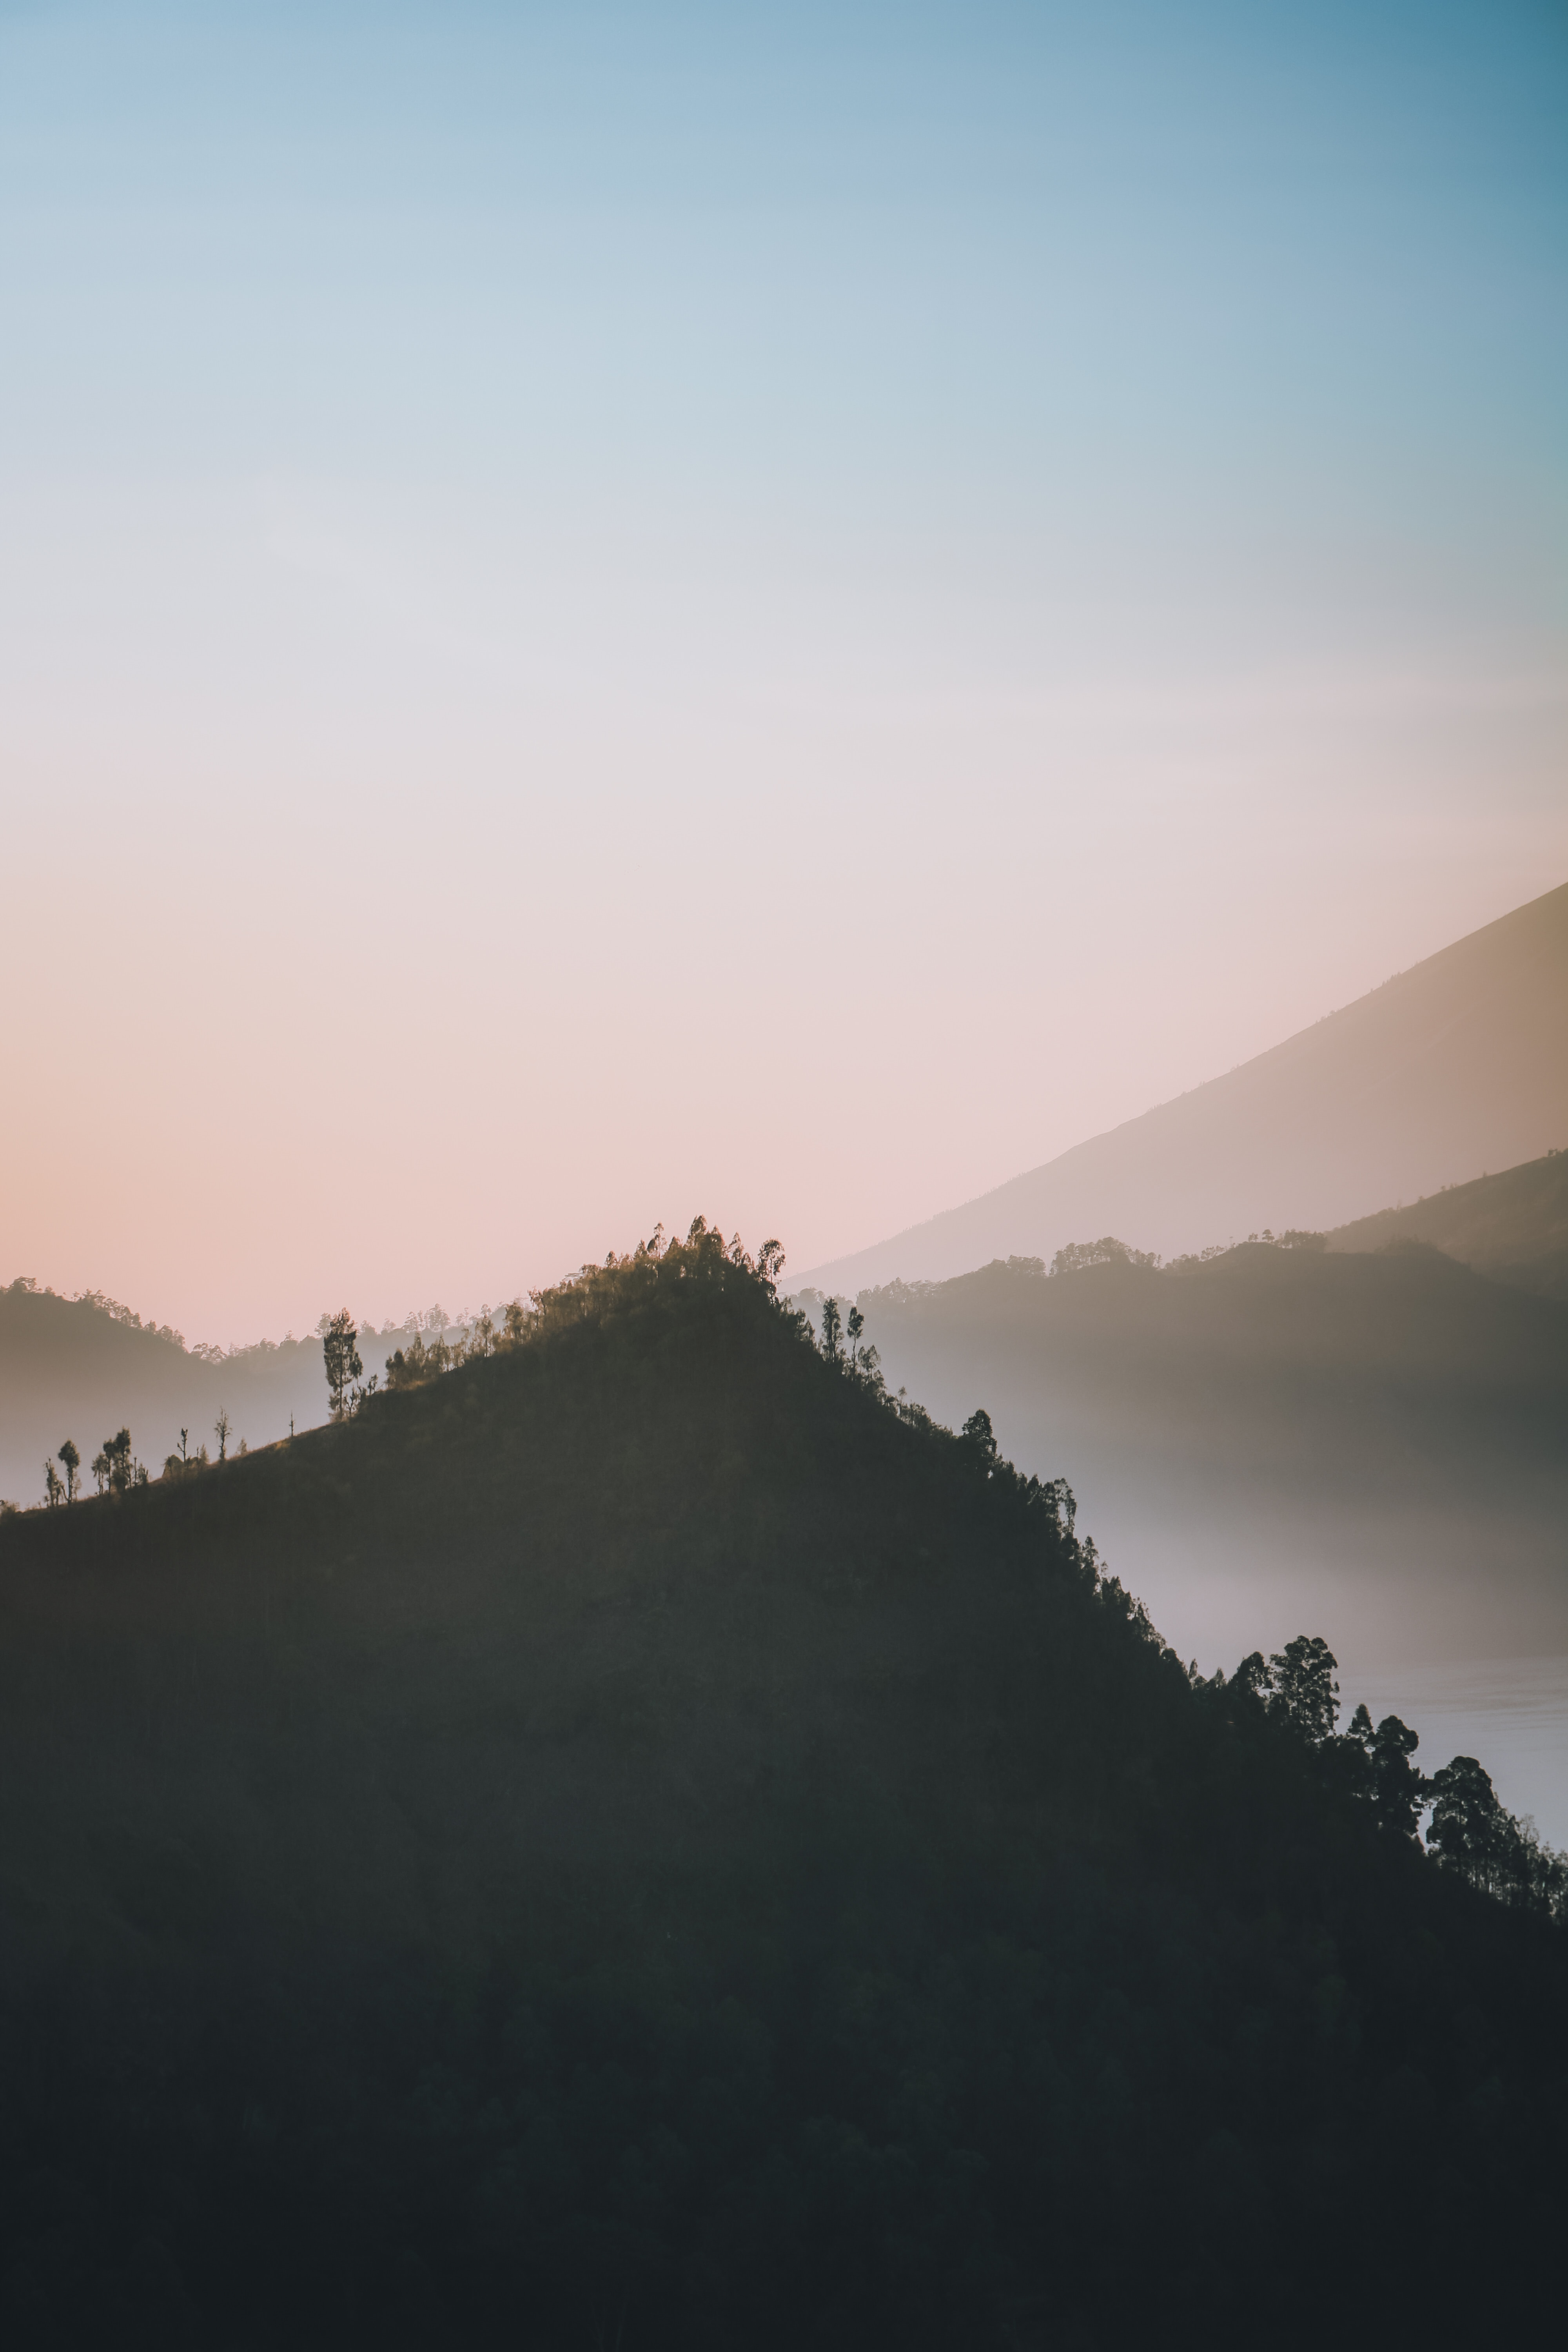 123952 download wallpaper Nature, Mountain, Vertex, Top, Fog, Dusk, Twilight, Landscape screensavers and pictures for free